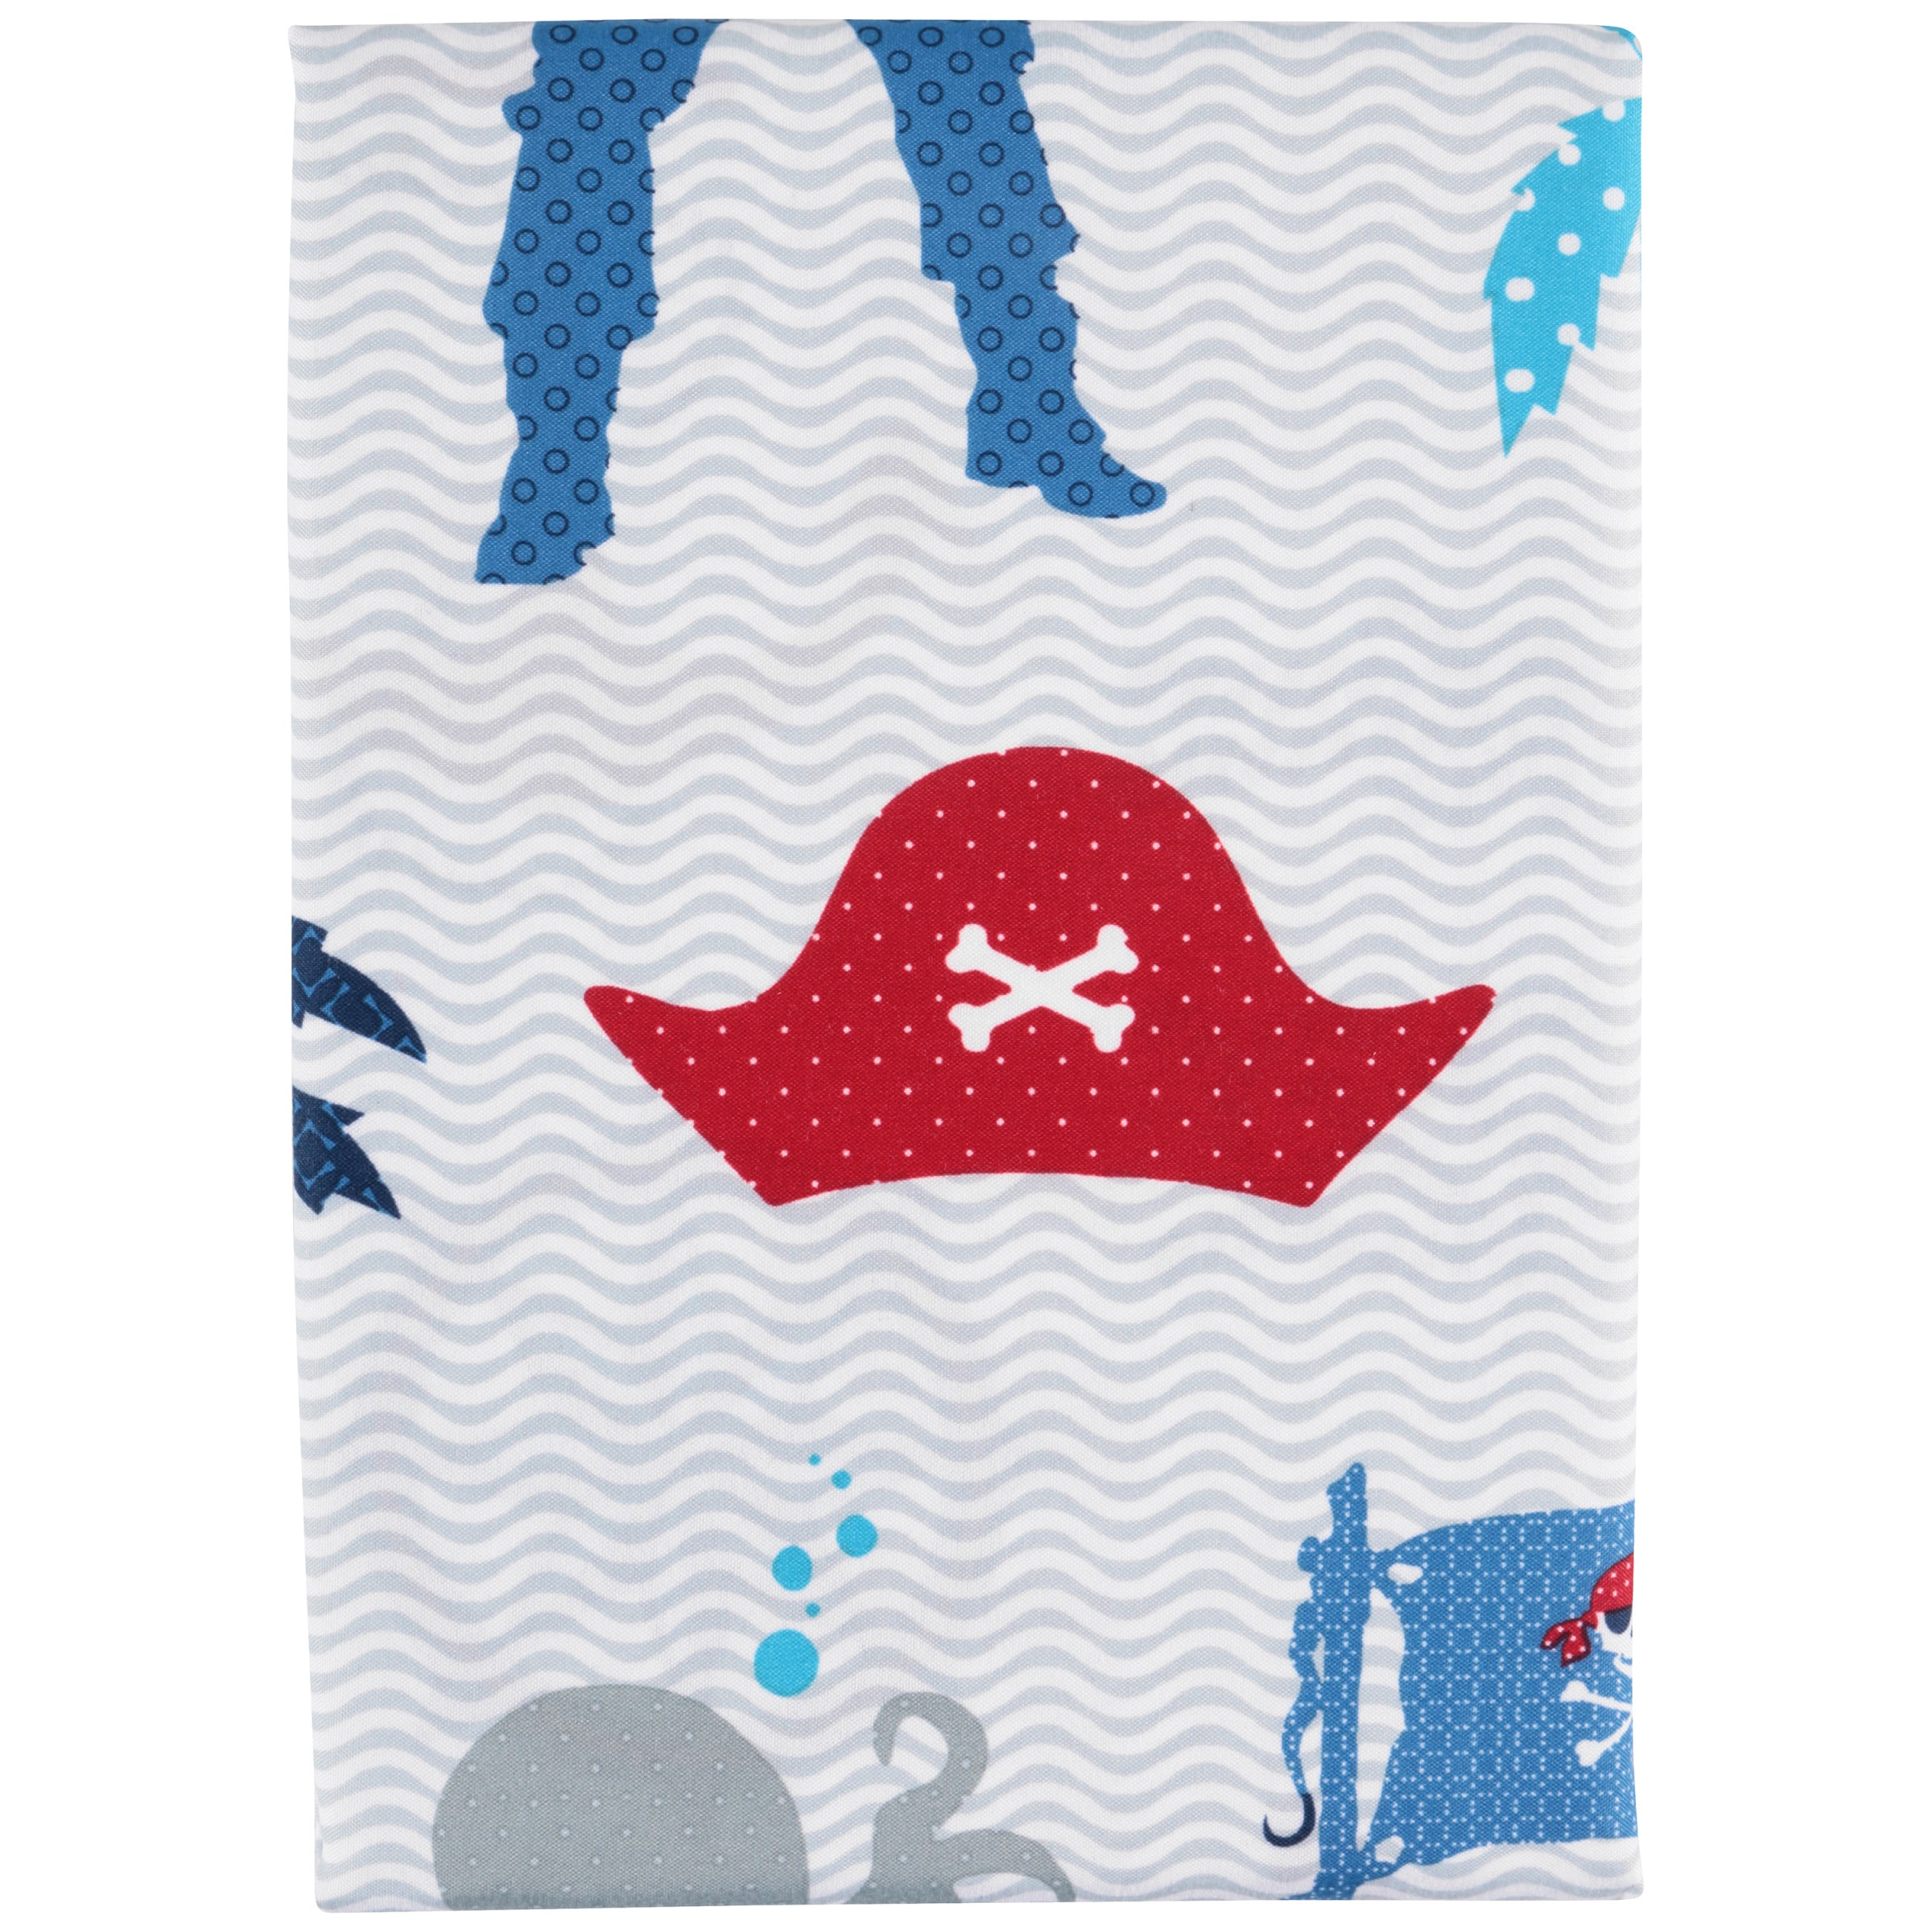 Mainstays™ Kids Ahoy Mates Fabric Shower Curtain Pack